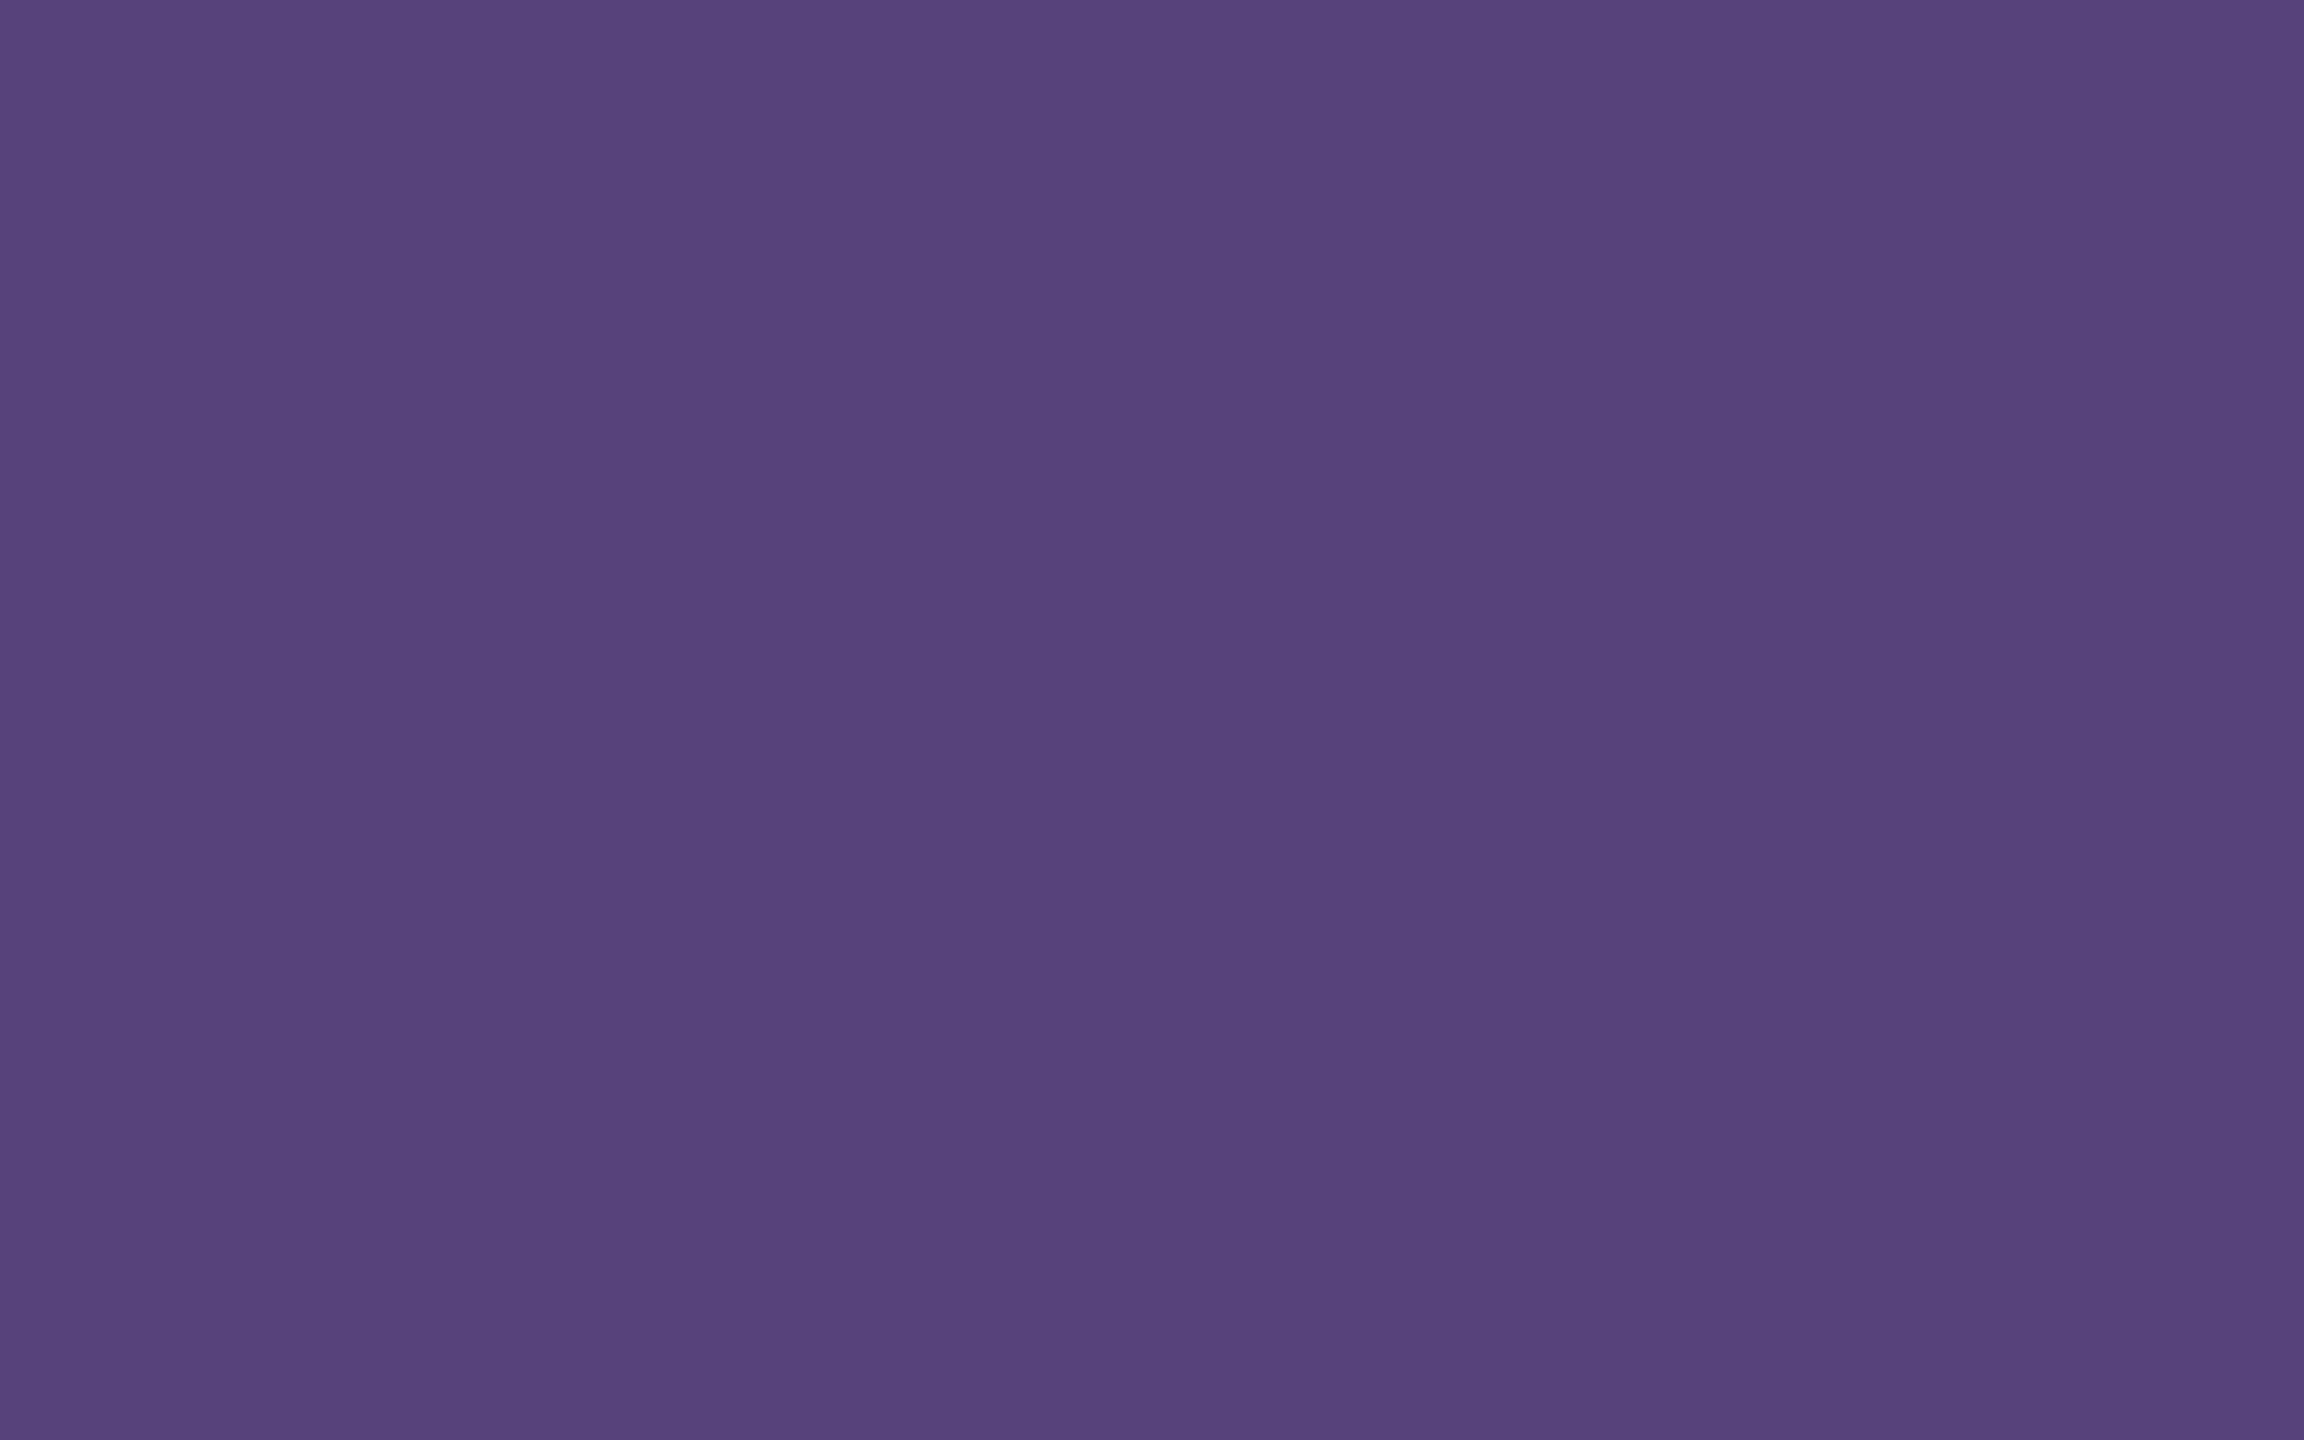 2304x1440 Cyber Grape Solid Color Background